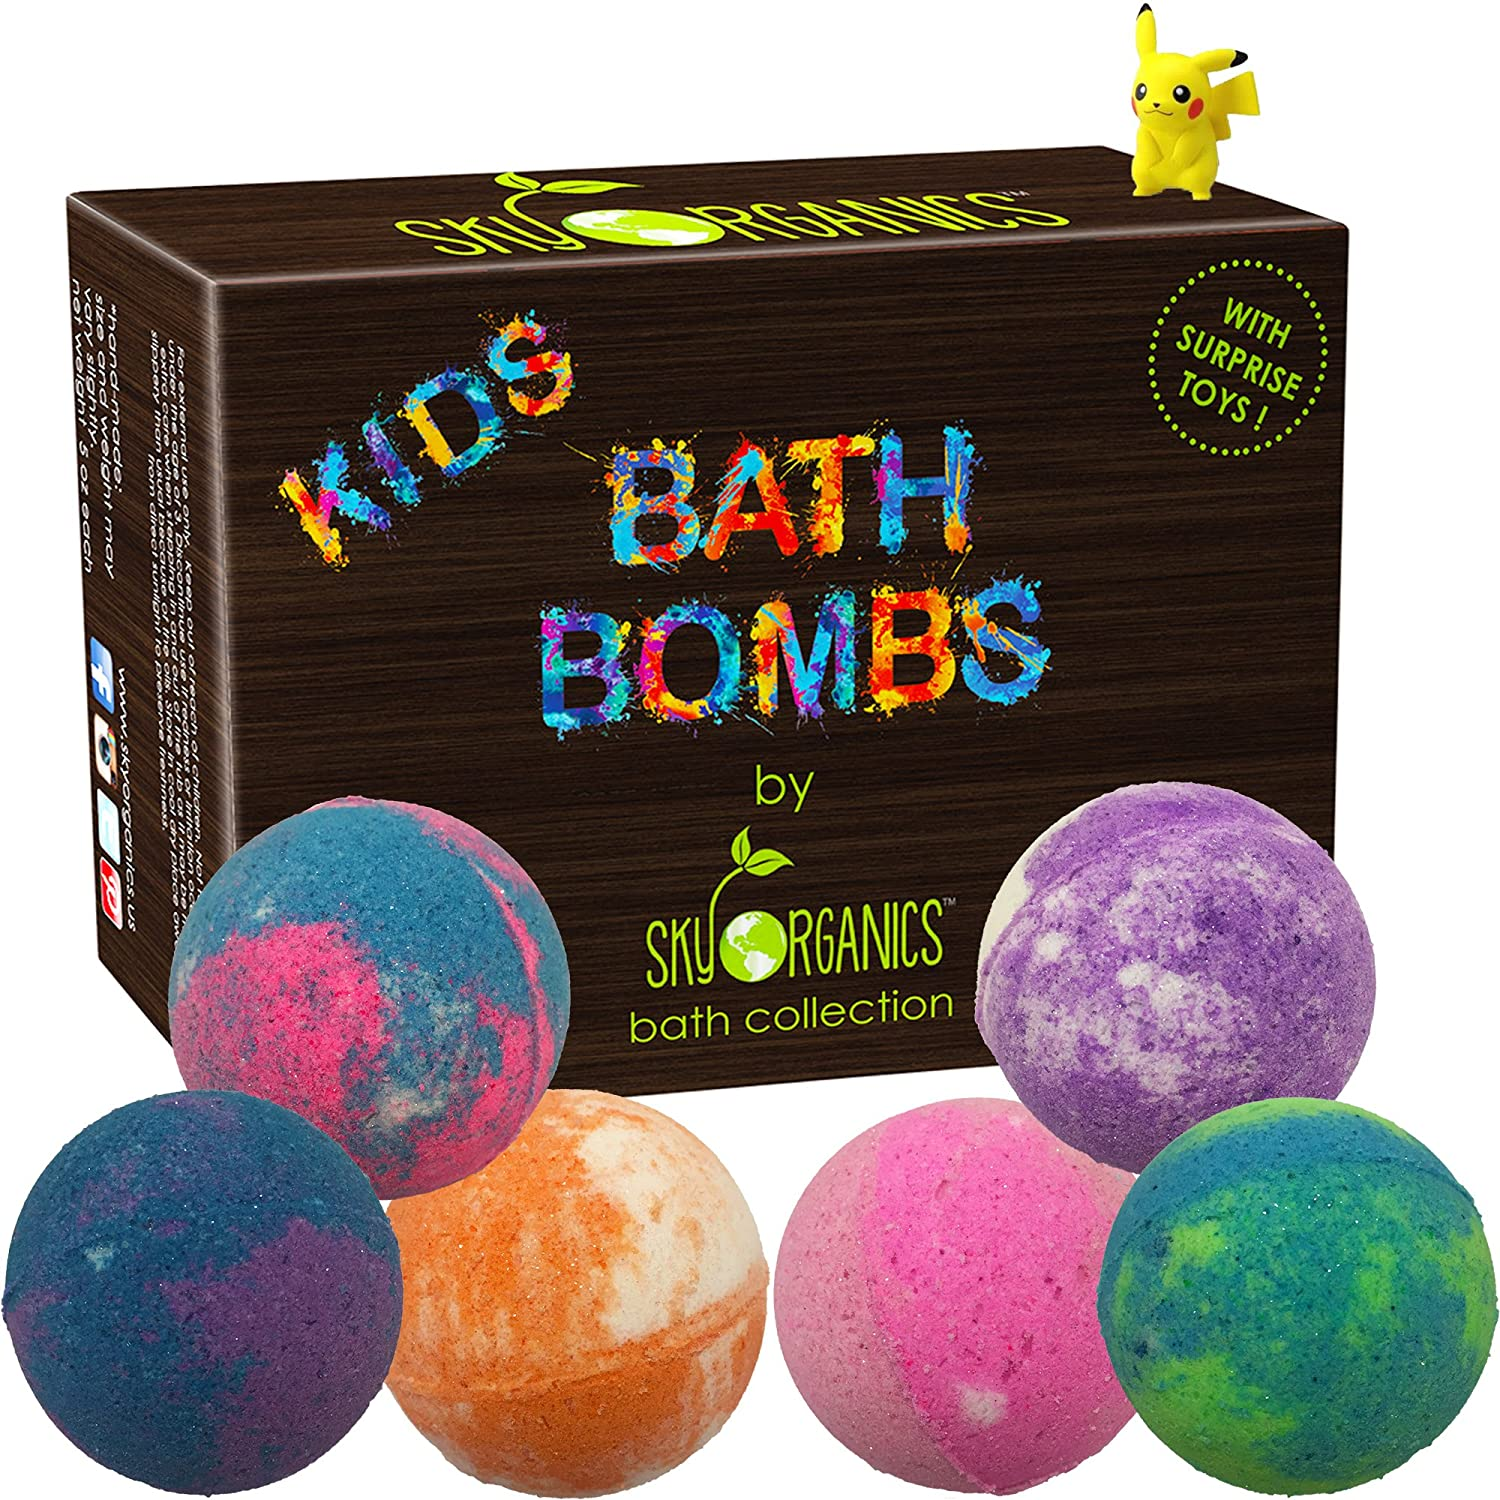 Kids Bath Bombs Gift Set with Surprise Toys, 6x5oz Fun Assorted Colored XL Bath Fizzies, Kid Safe, Gender Neutral with Organic Essential Oils -Handmade in the USA Organic Bubble Bath Fizzy Sky Organics